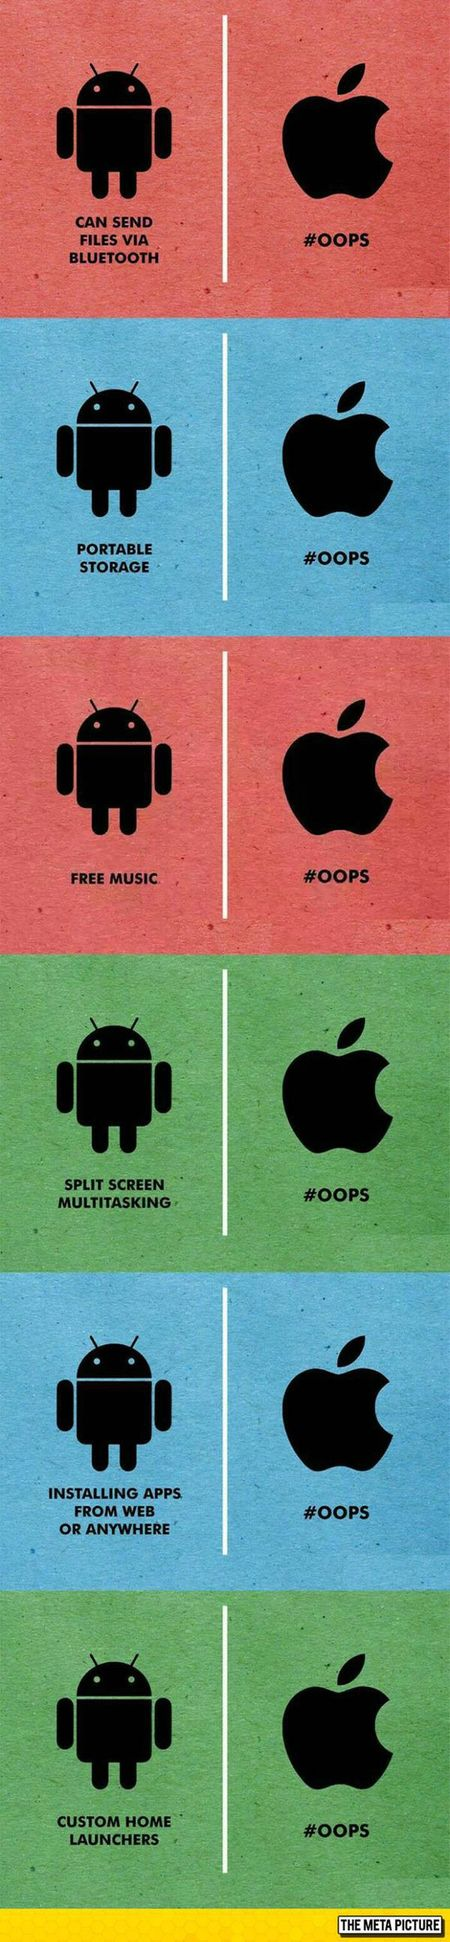 Androidversusapple